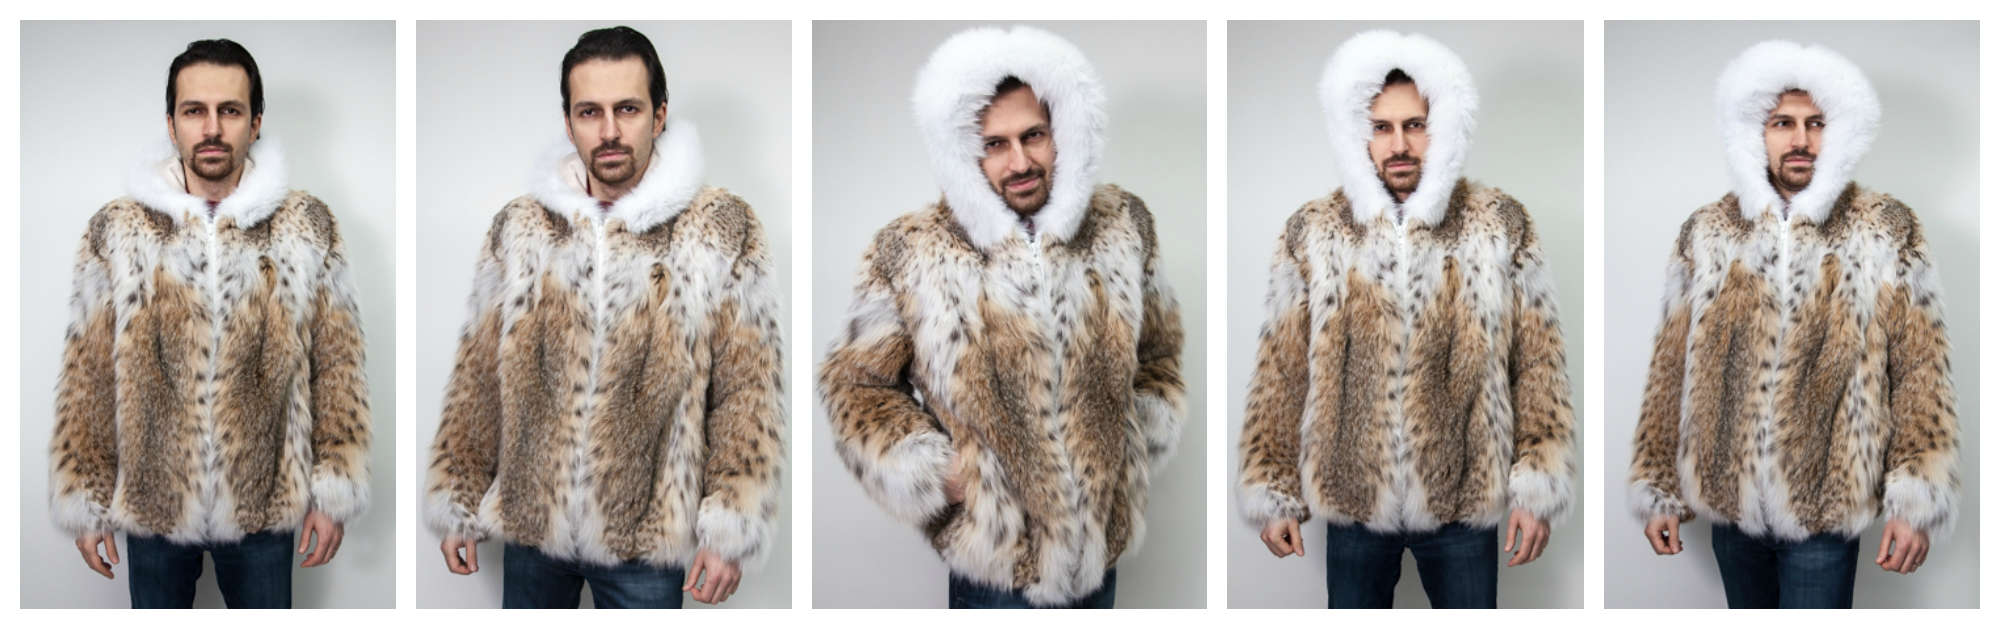 The Lynx Fur Jacket with White Fox Hood worn by Snoop Dogg AKA Snoop Lion